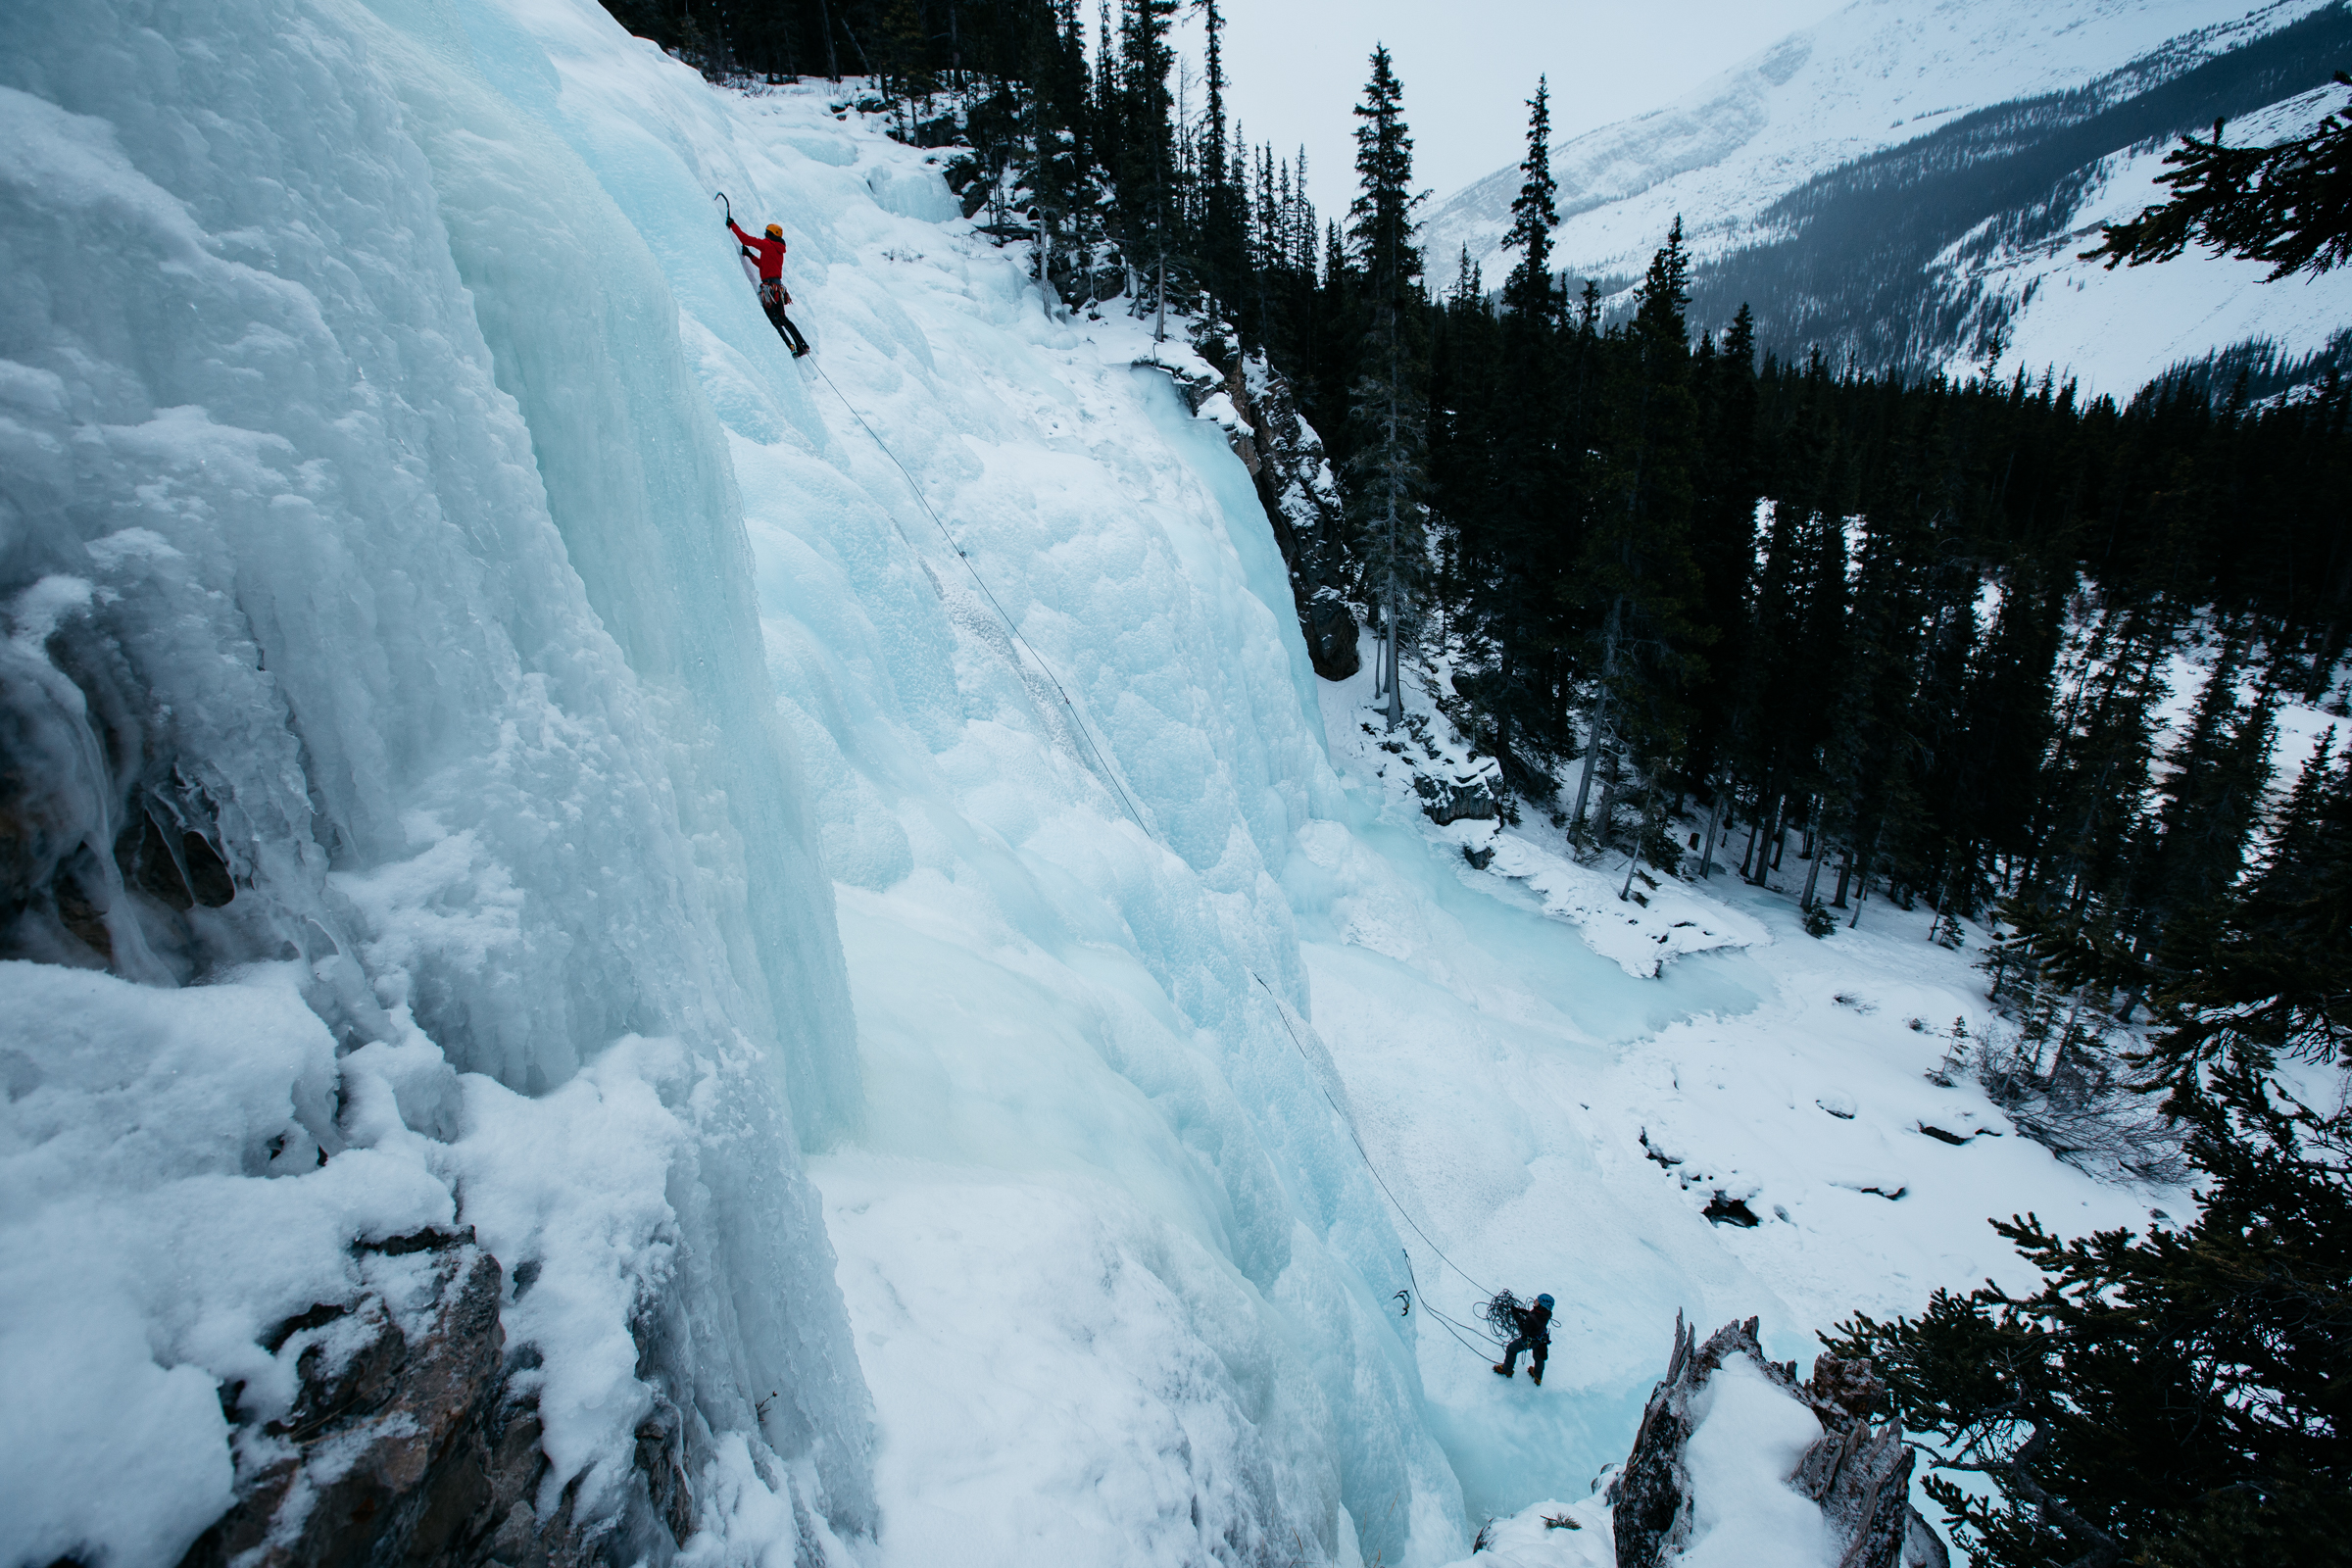 taken for the Mountaineer Inn in Lake Louise. We found this great climbing spot on the beautiful Jasper to Banff highway. This shot required Thomas to hike up steep, icy terrain without proper gear, but it was totally worth it!